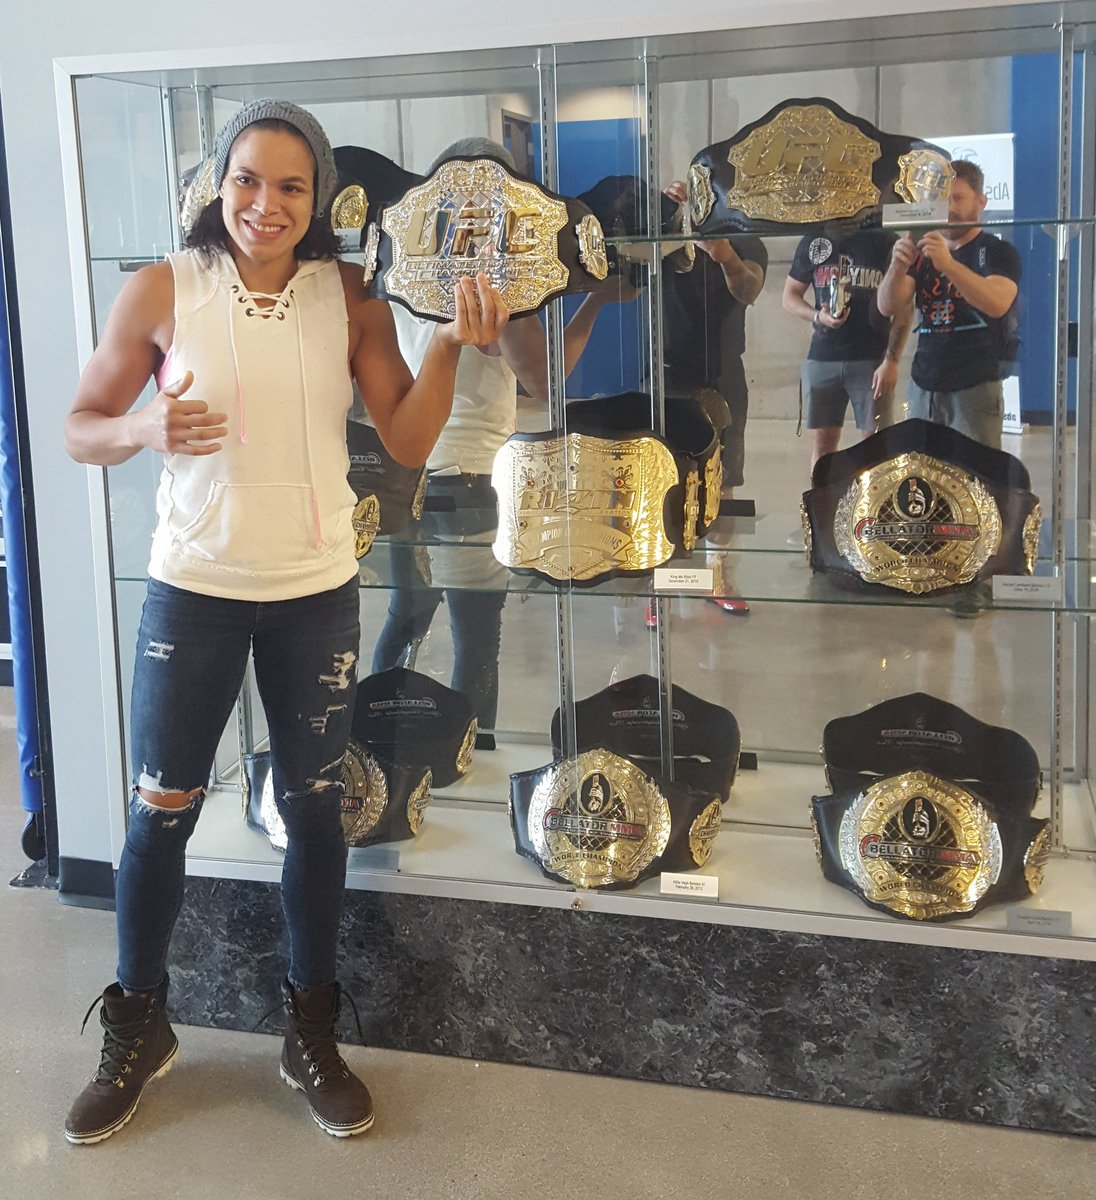 @Amanda_Leoa adding another title to #americantopteam collection. https://t.co/f5oOKxOcy8